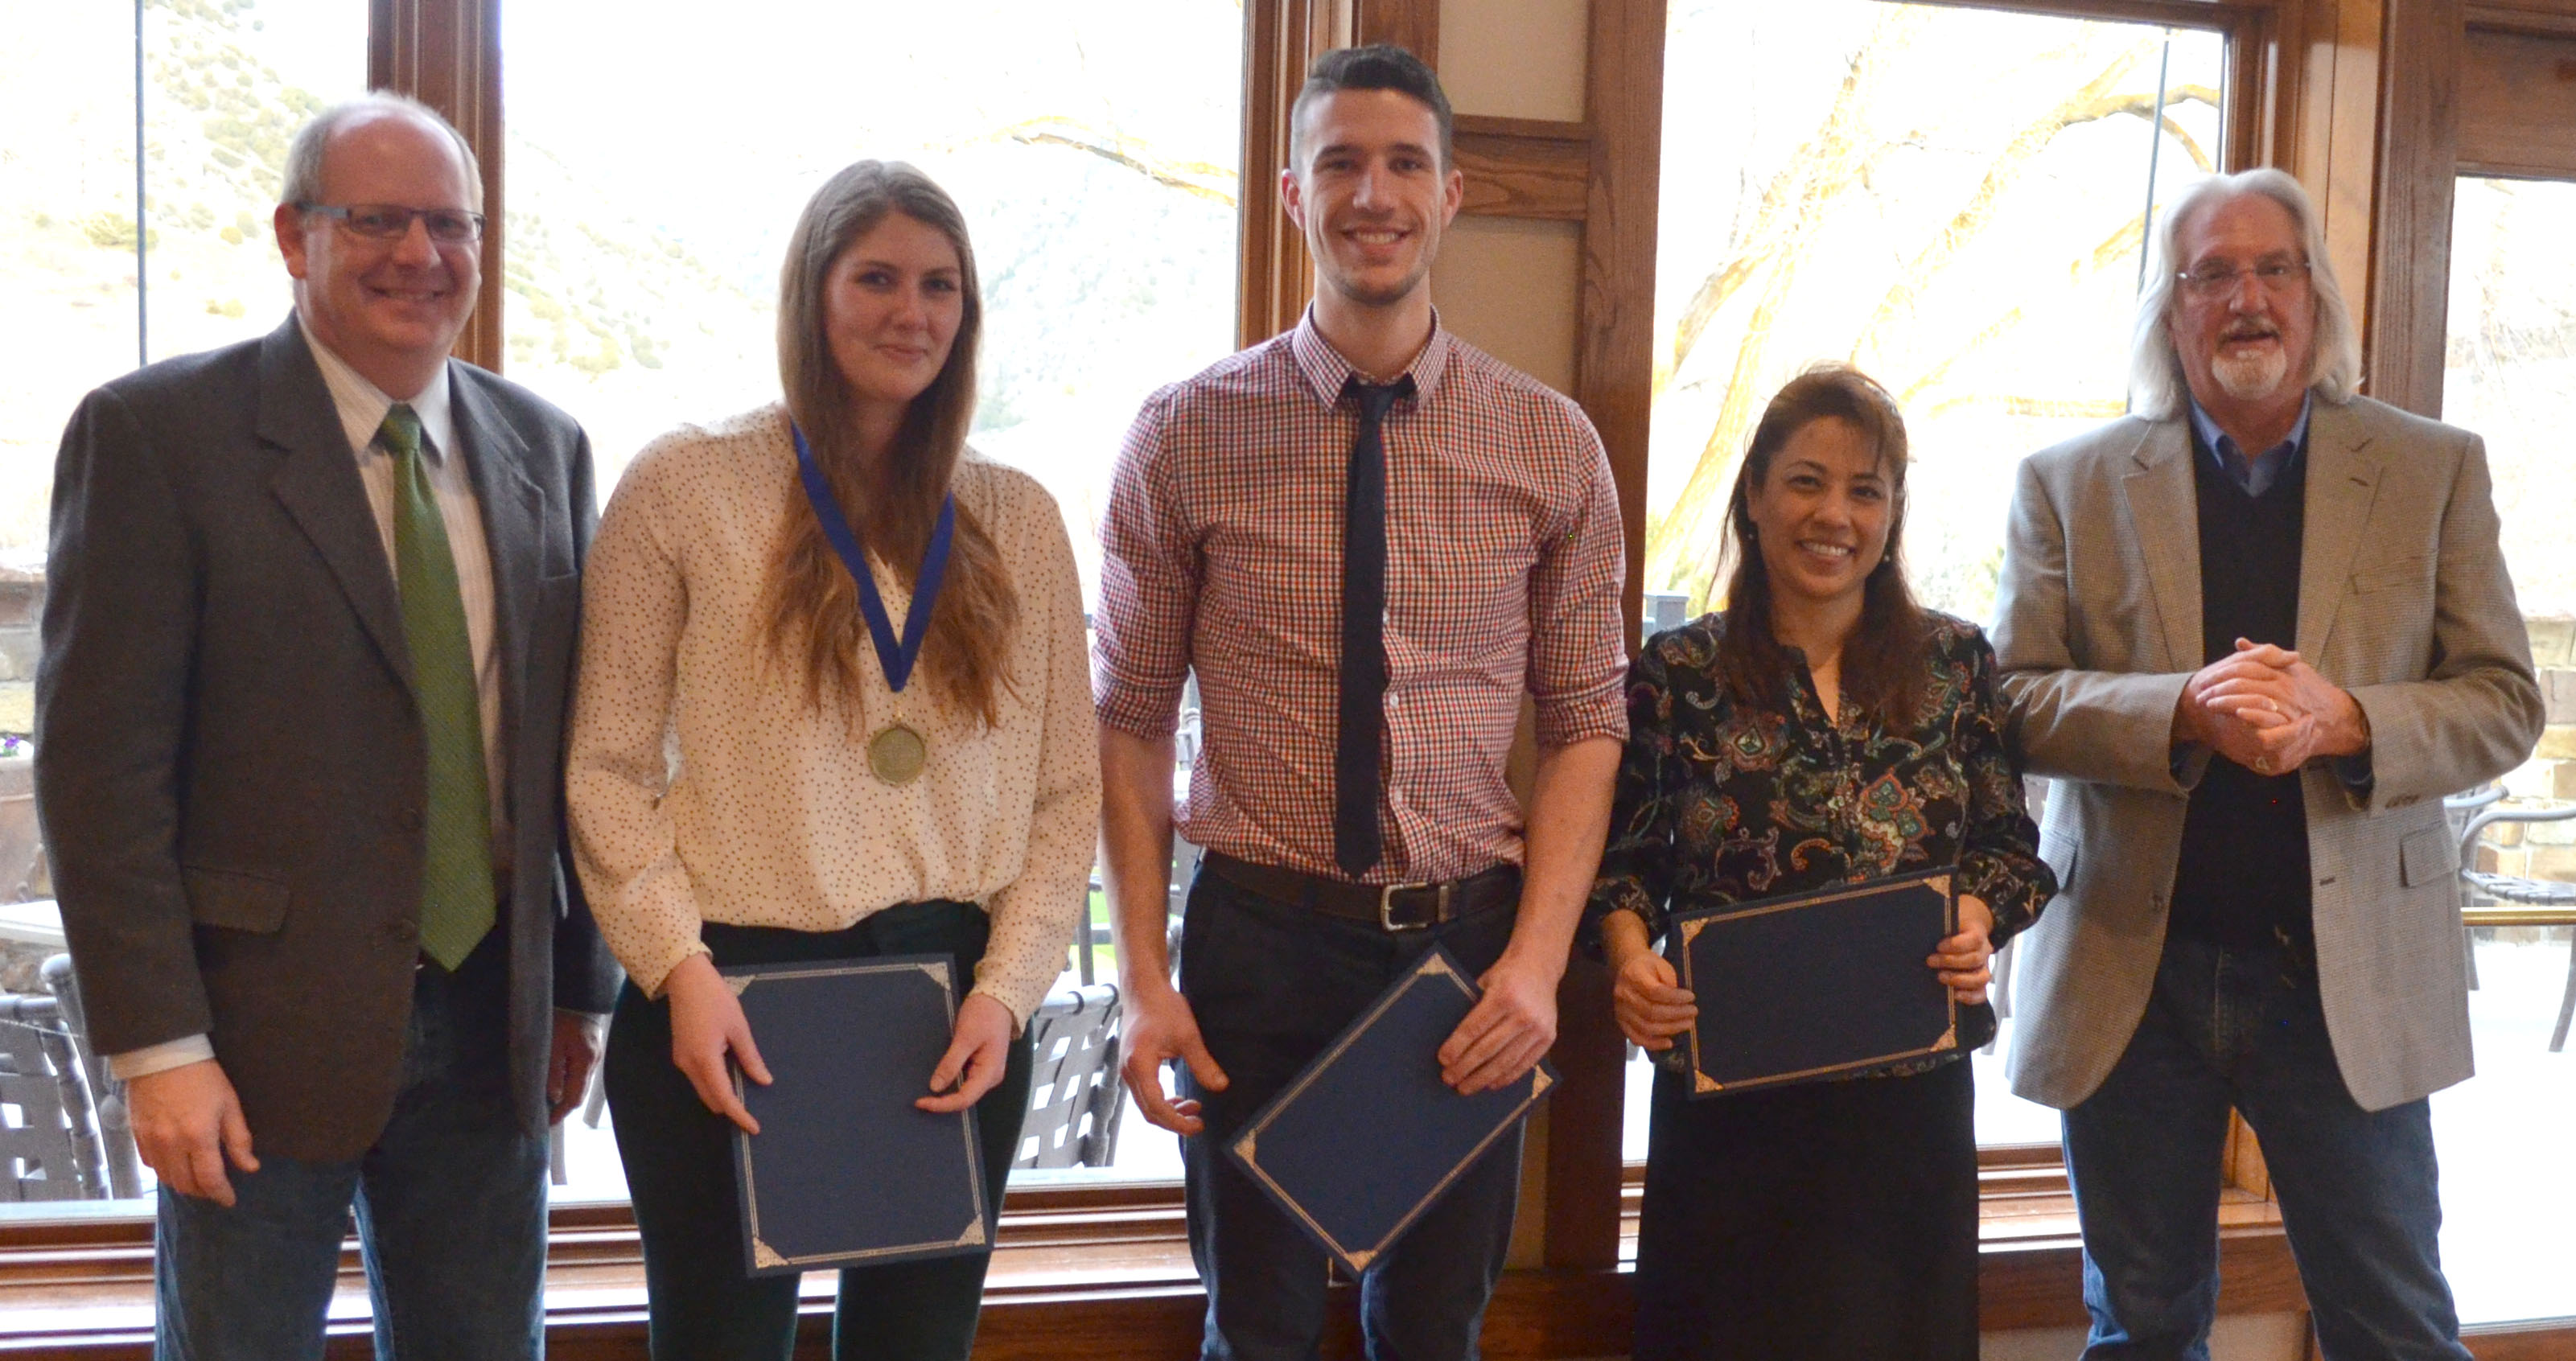 Students receive awards at banquet